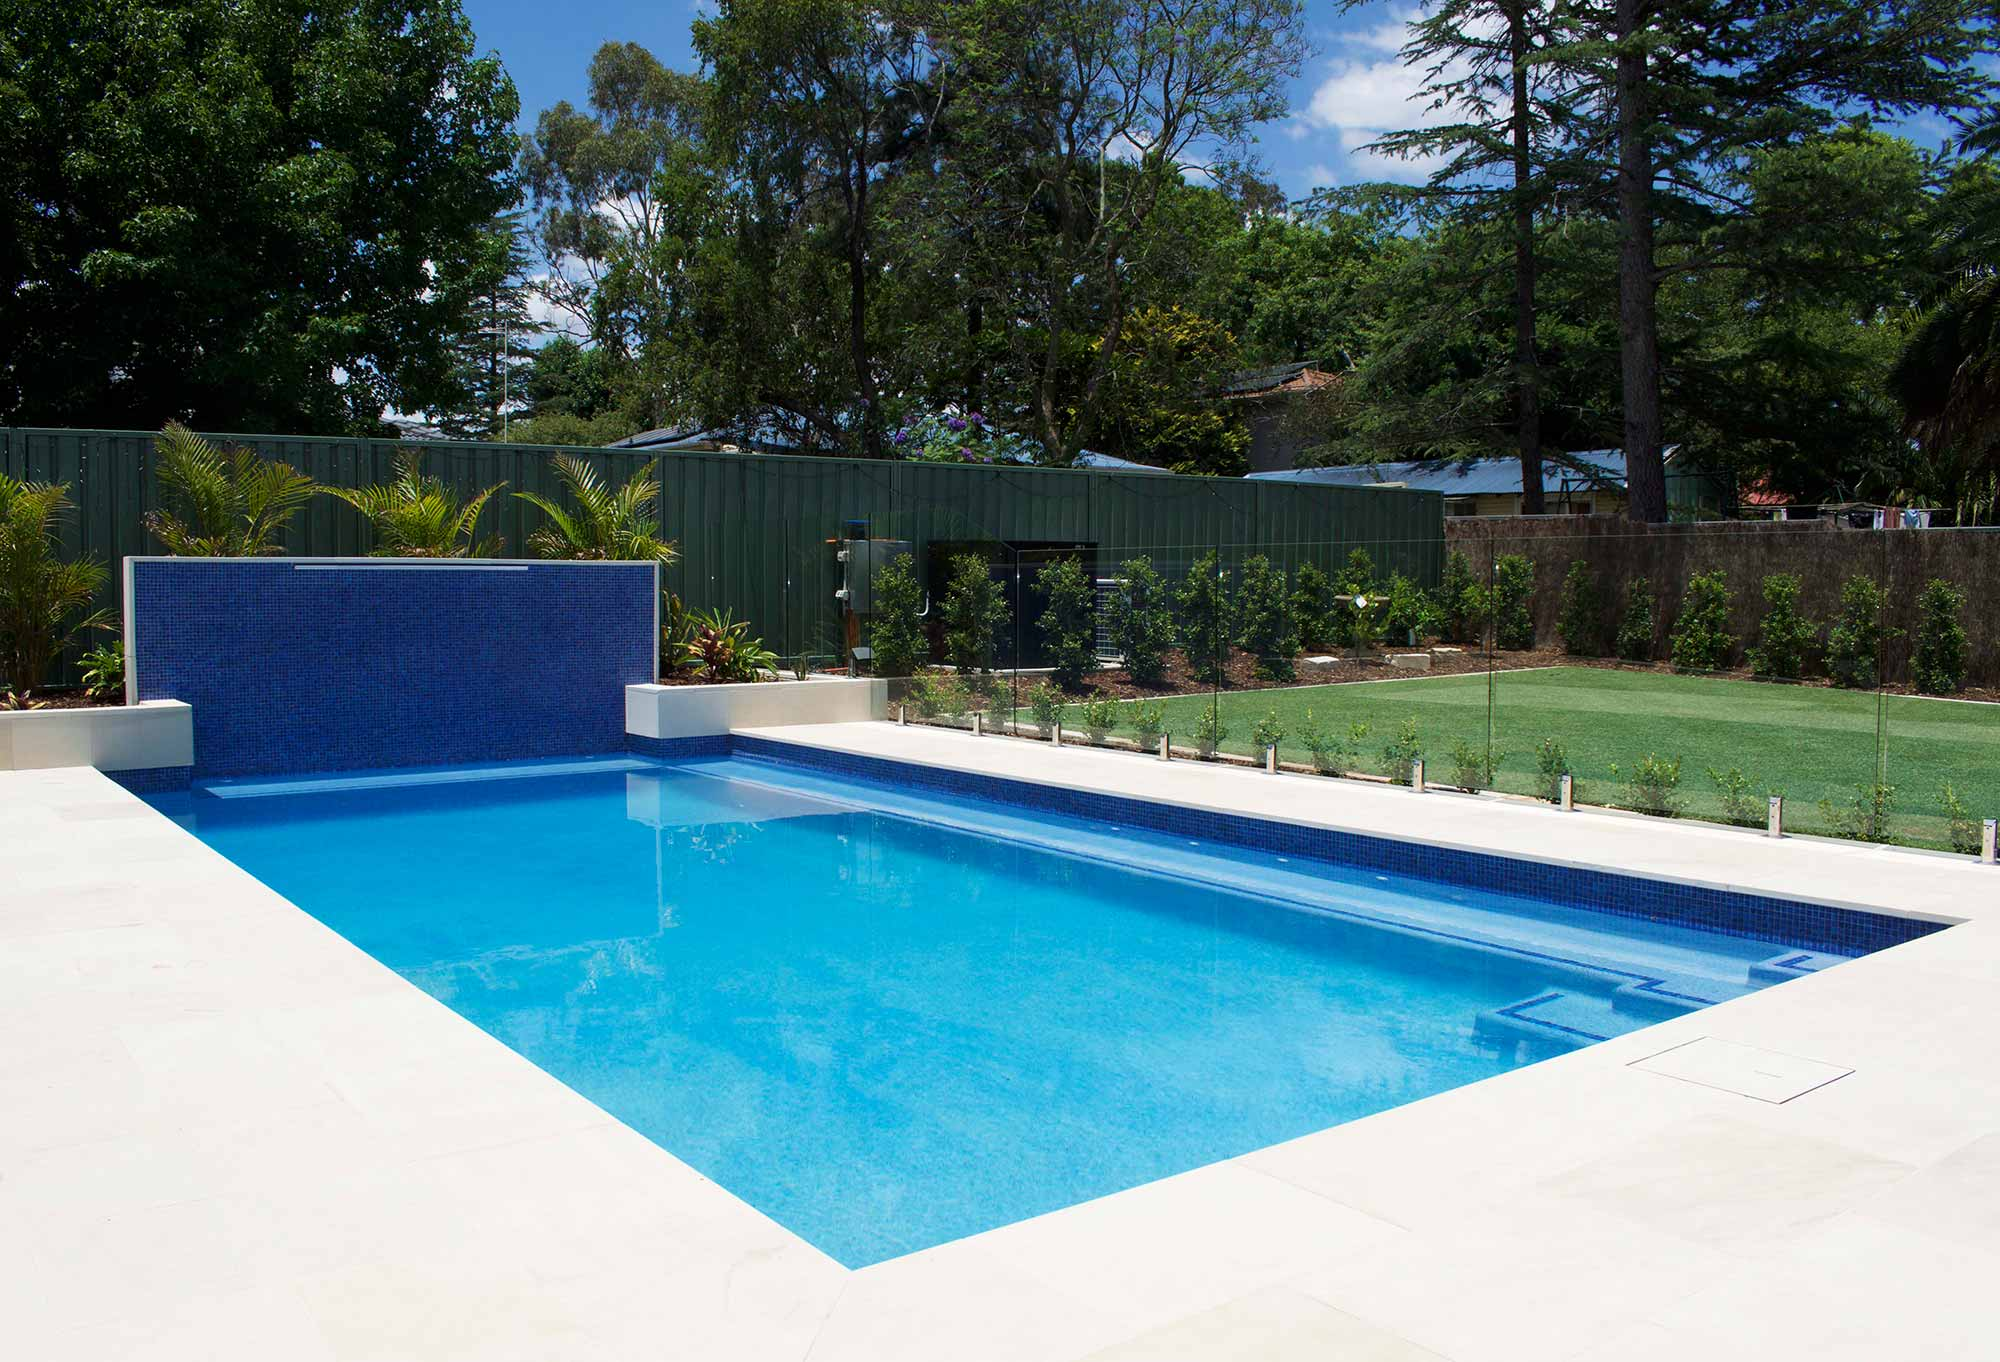 Better Pools & Spas Concrete Pool Sale